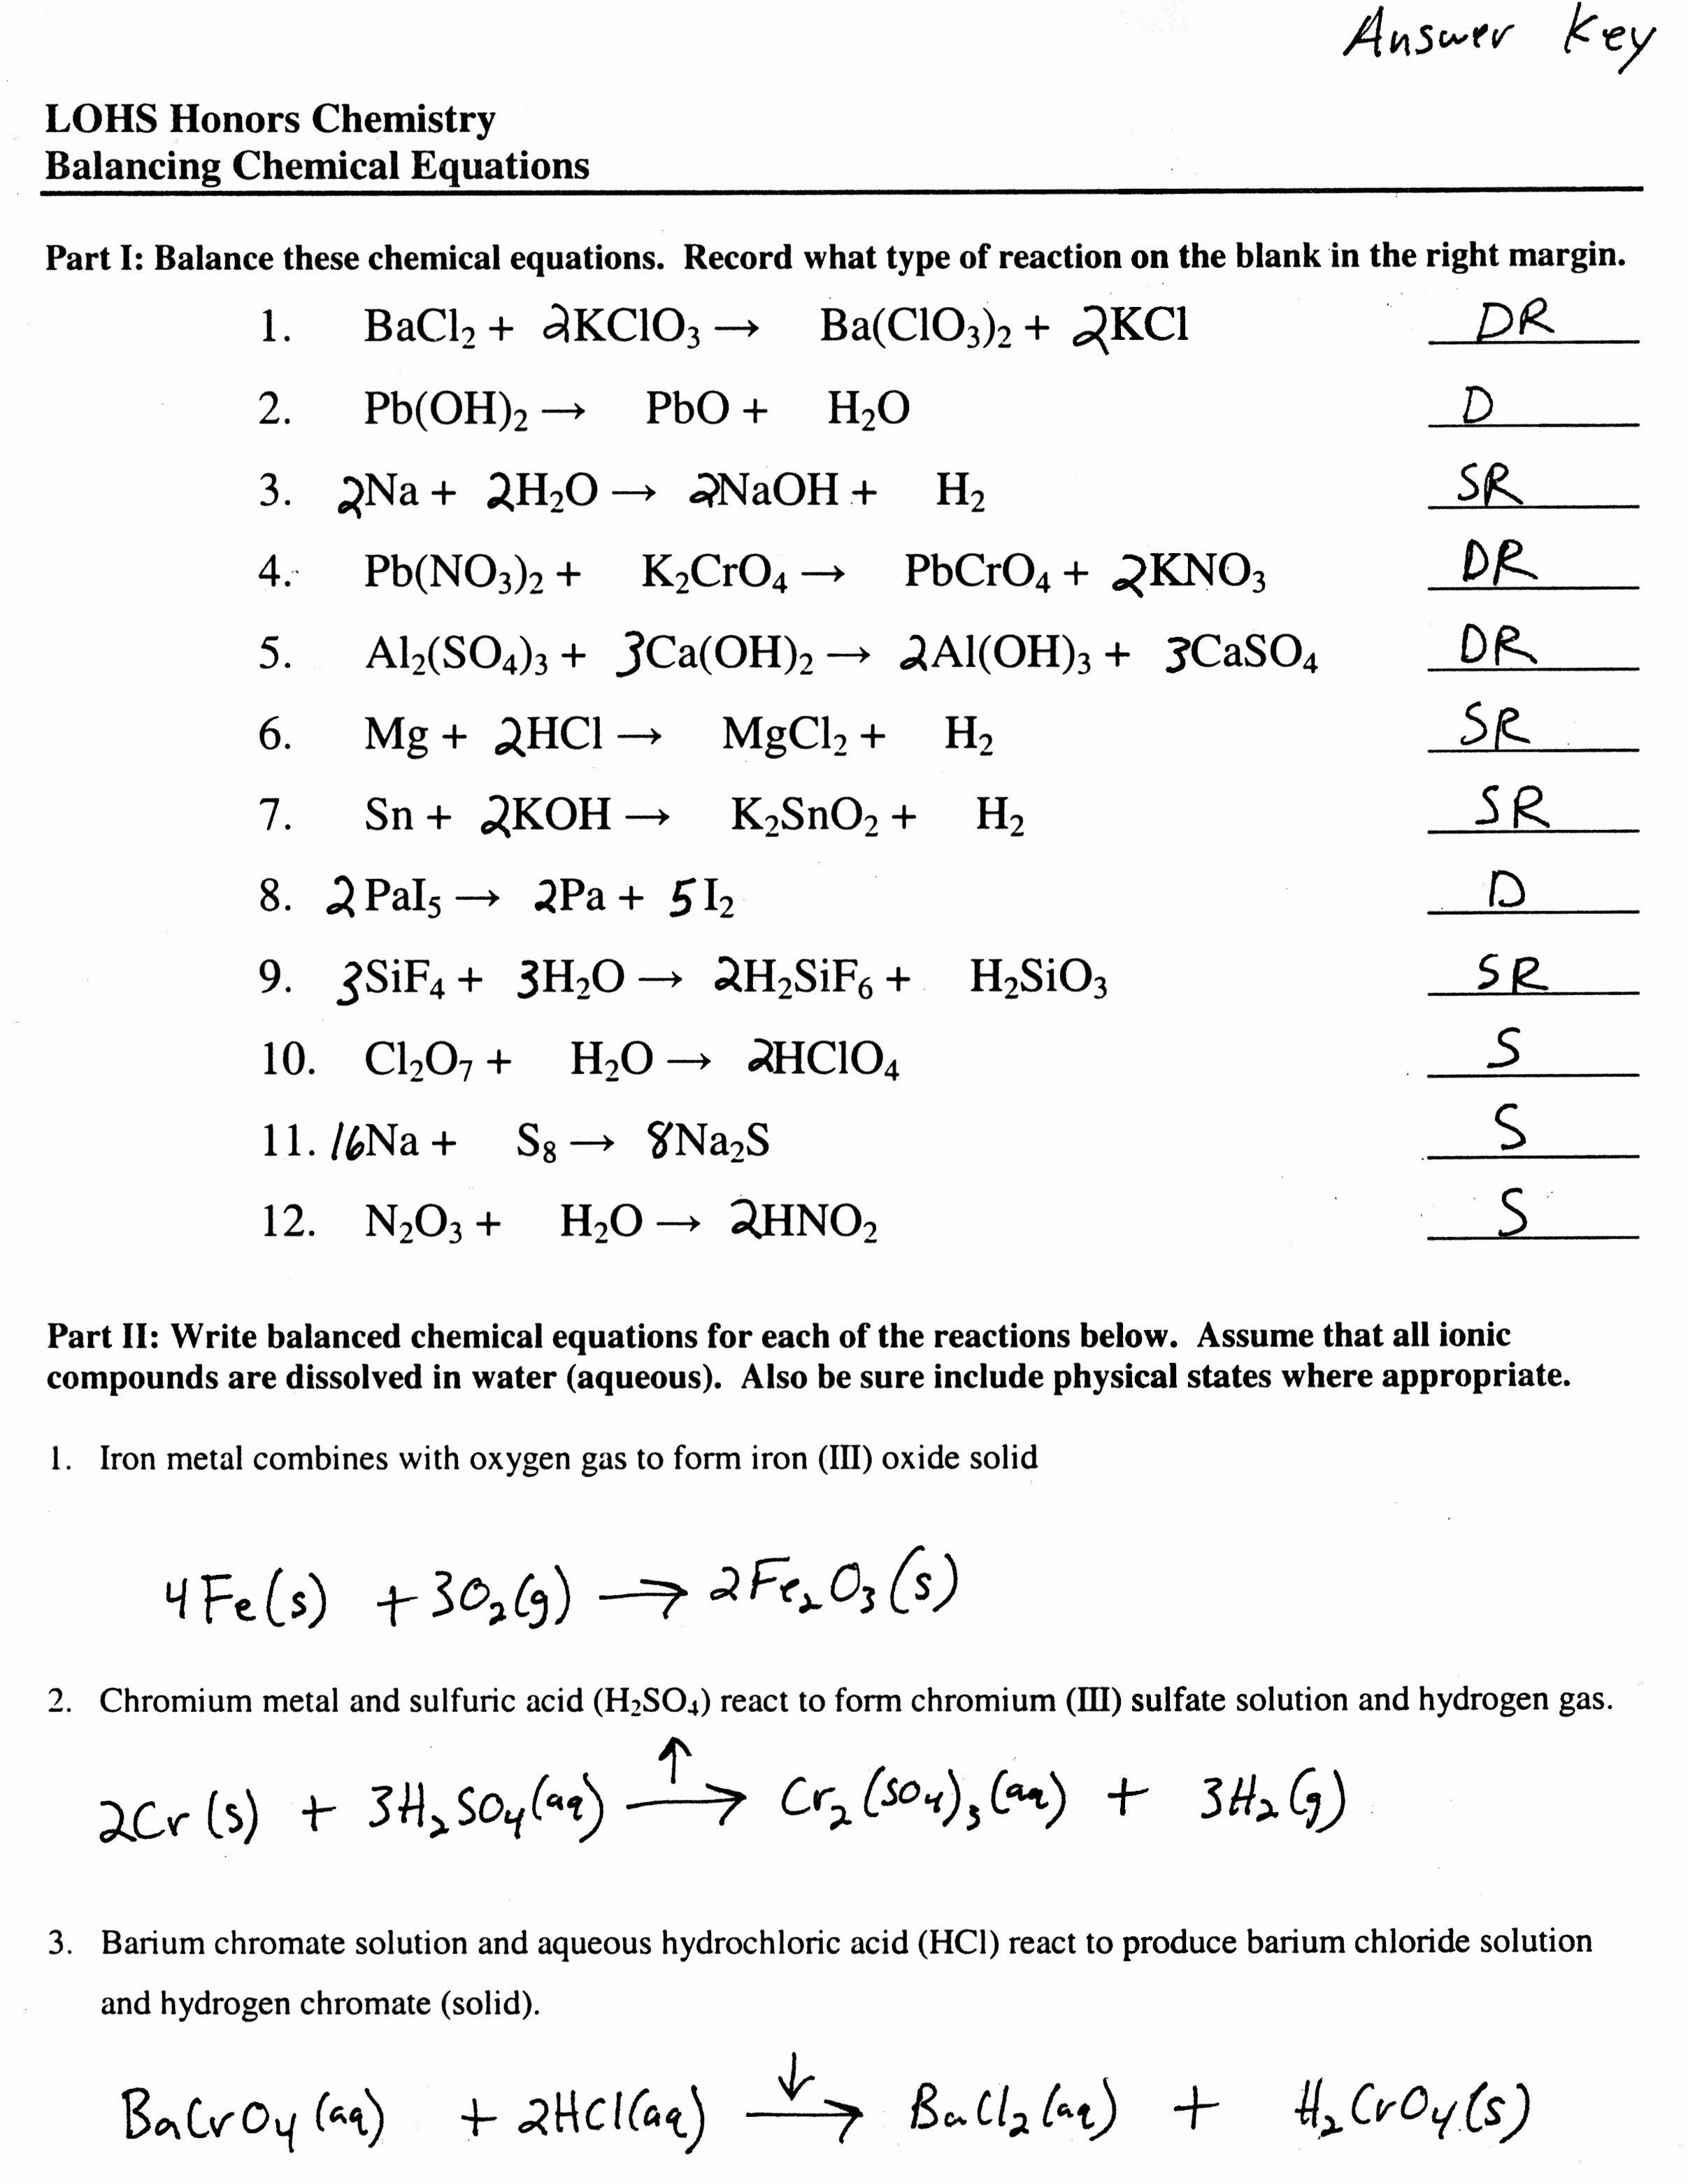 Balancing Equation Worksheet with Answers Fresh Balancing Equations Worksheet Health and Fitness Training